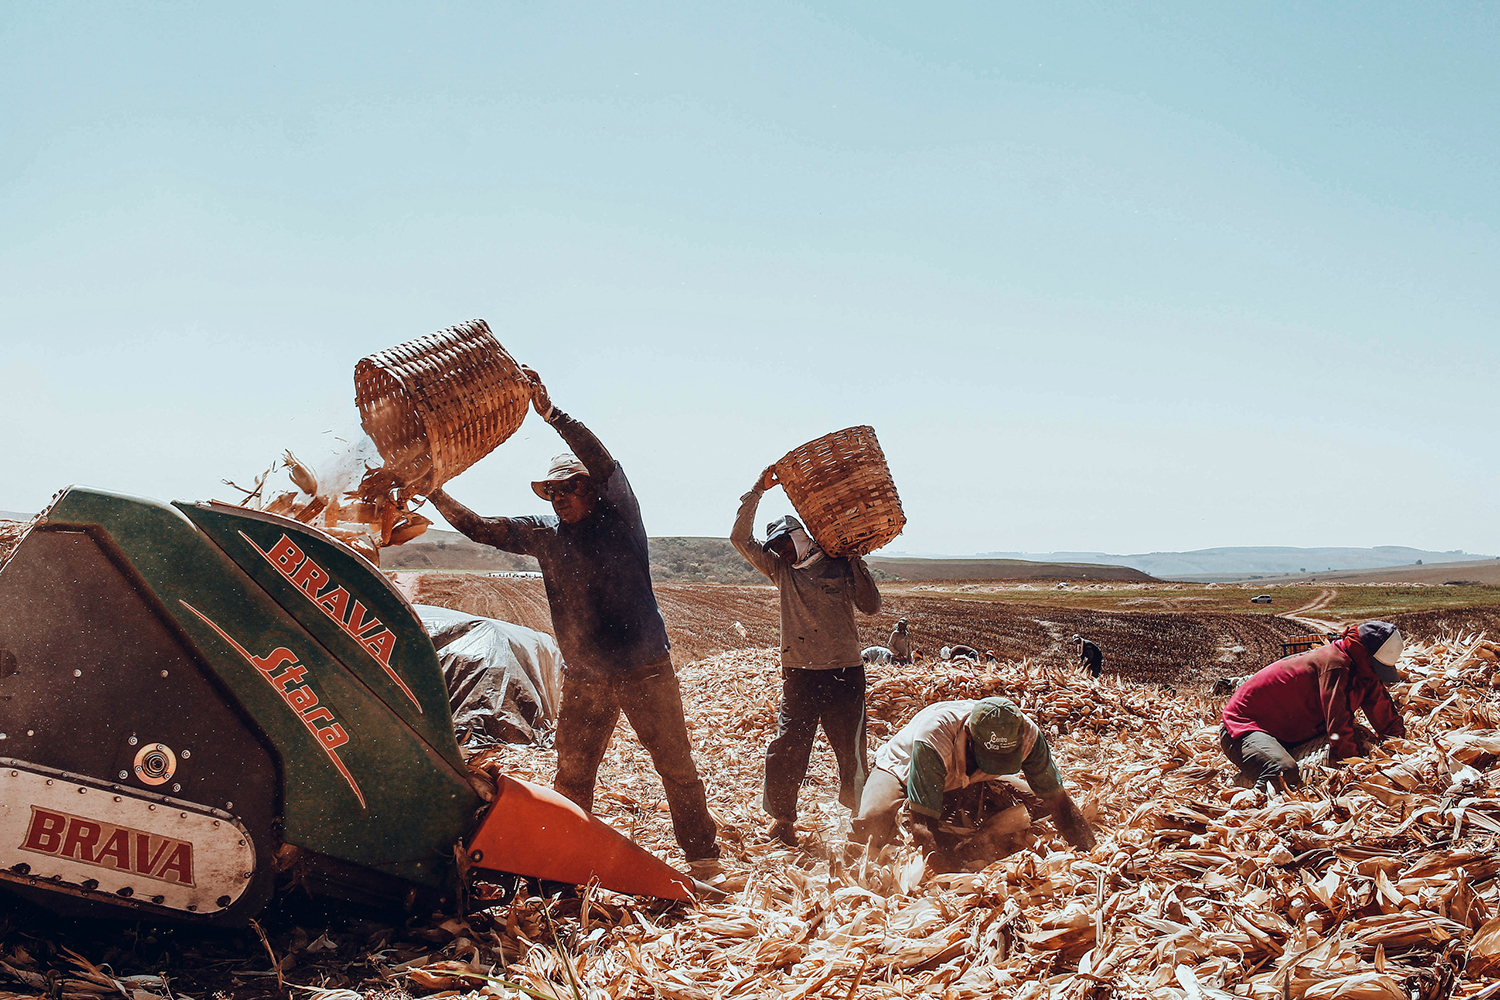 Photographer Documents The Harvest For Straw Cigarettes Production